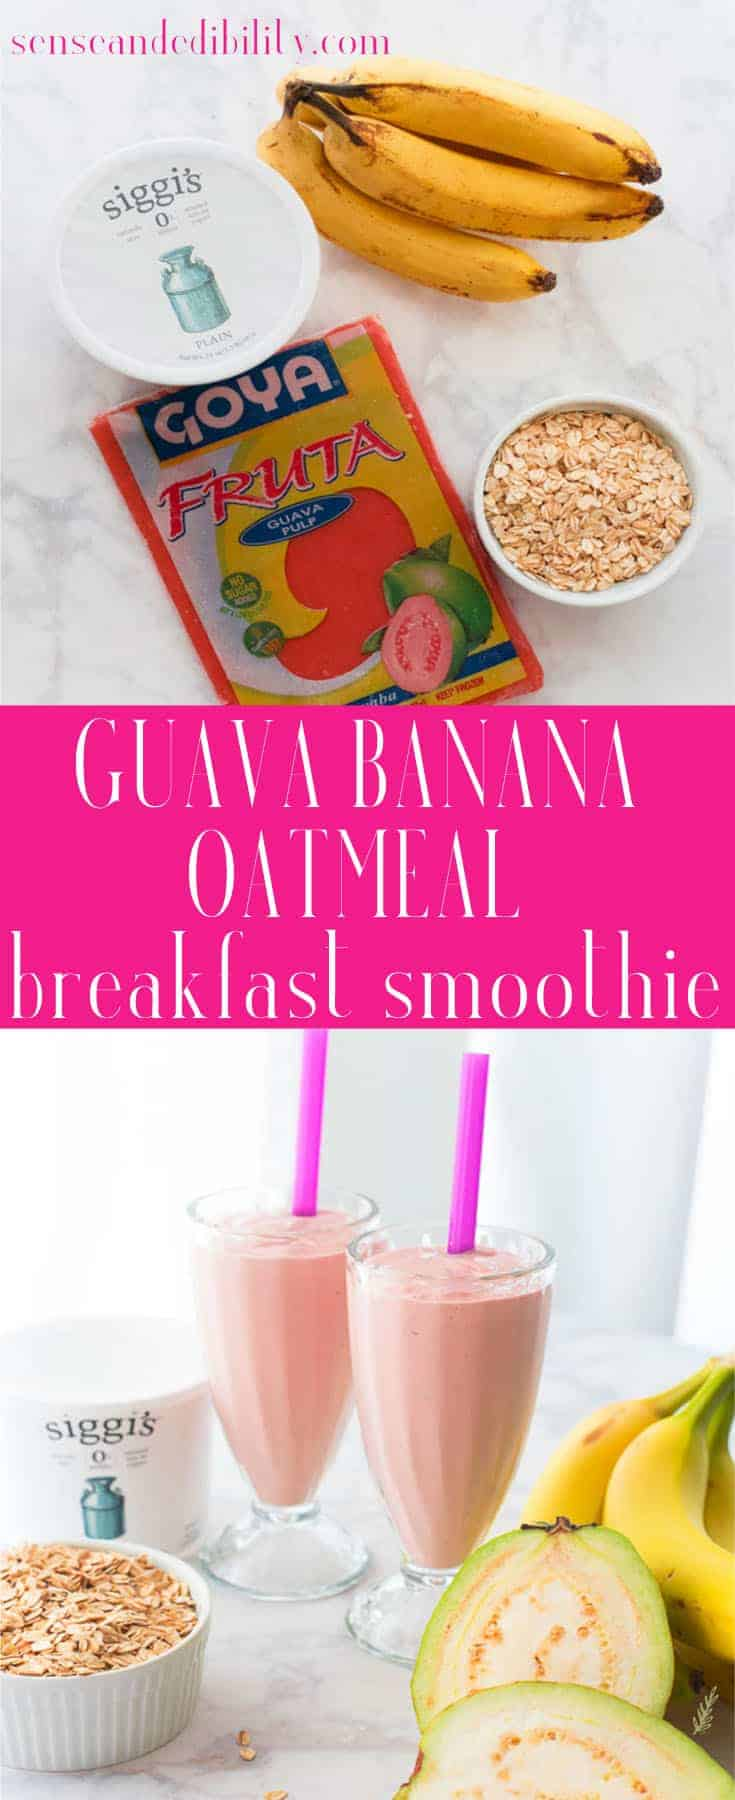 Guava Banana Oatmeal Breakfast Shake prove that a fast breakfast doesn't have to be an unhealthy one. It's nutritious, filling and customizable, too! #breakfastshake #breakfastsmoothie #breakfast #quickandeasymeal #mealreplacement #fruitandyogurt #grains via @ediblesense